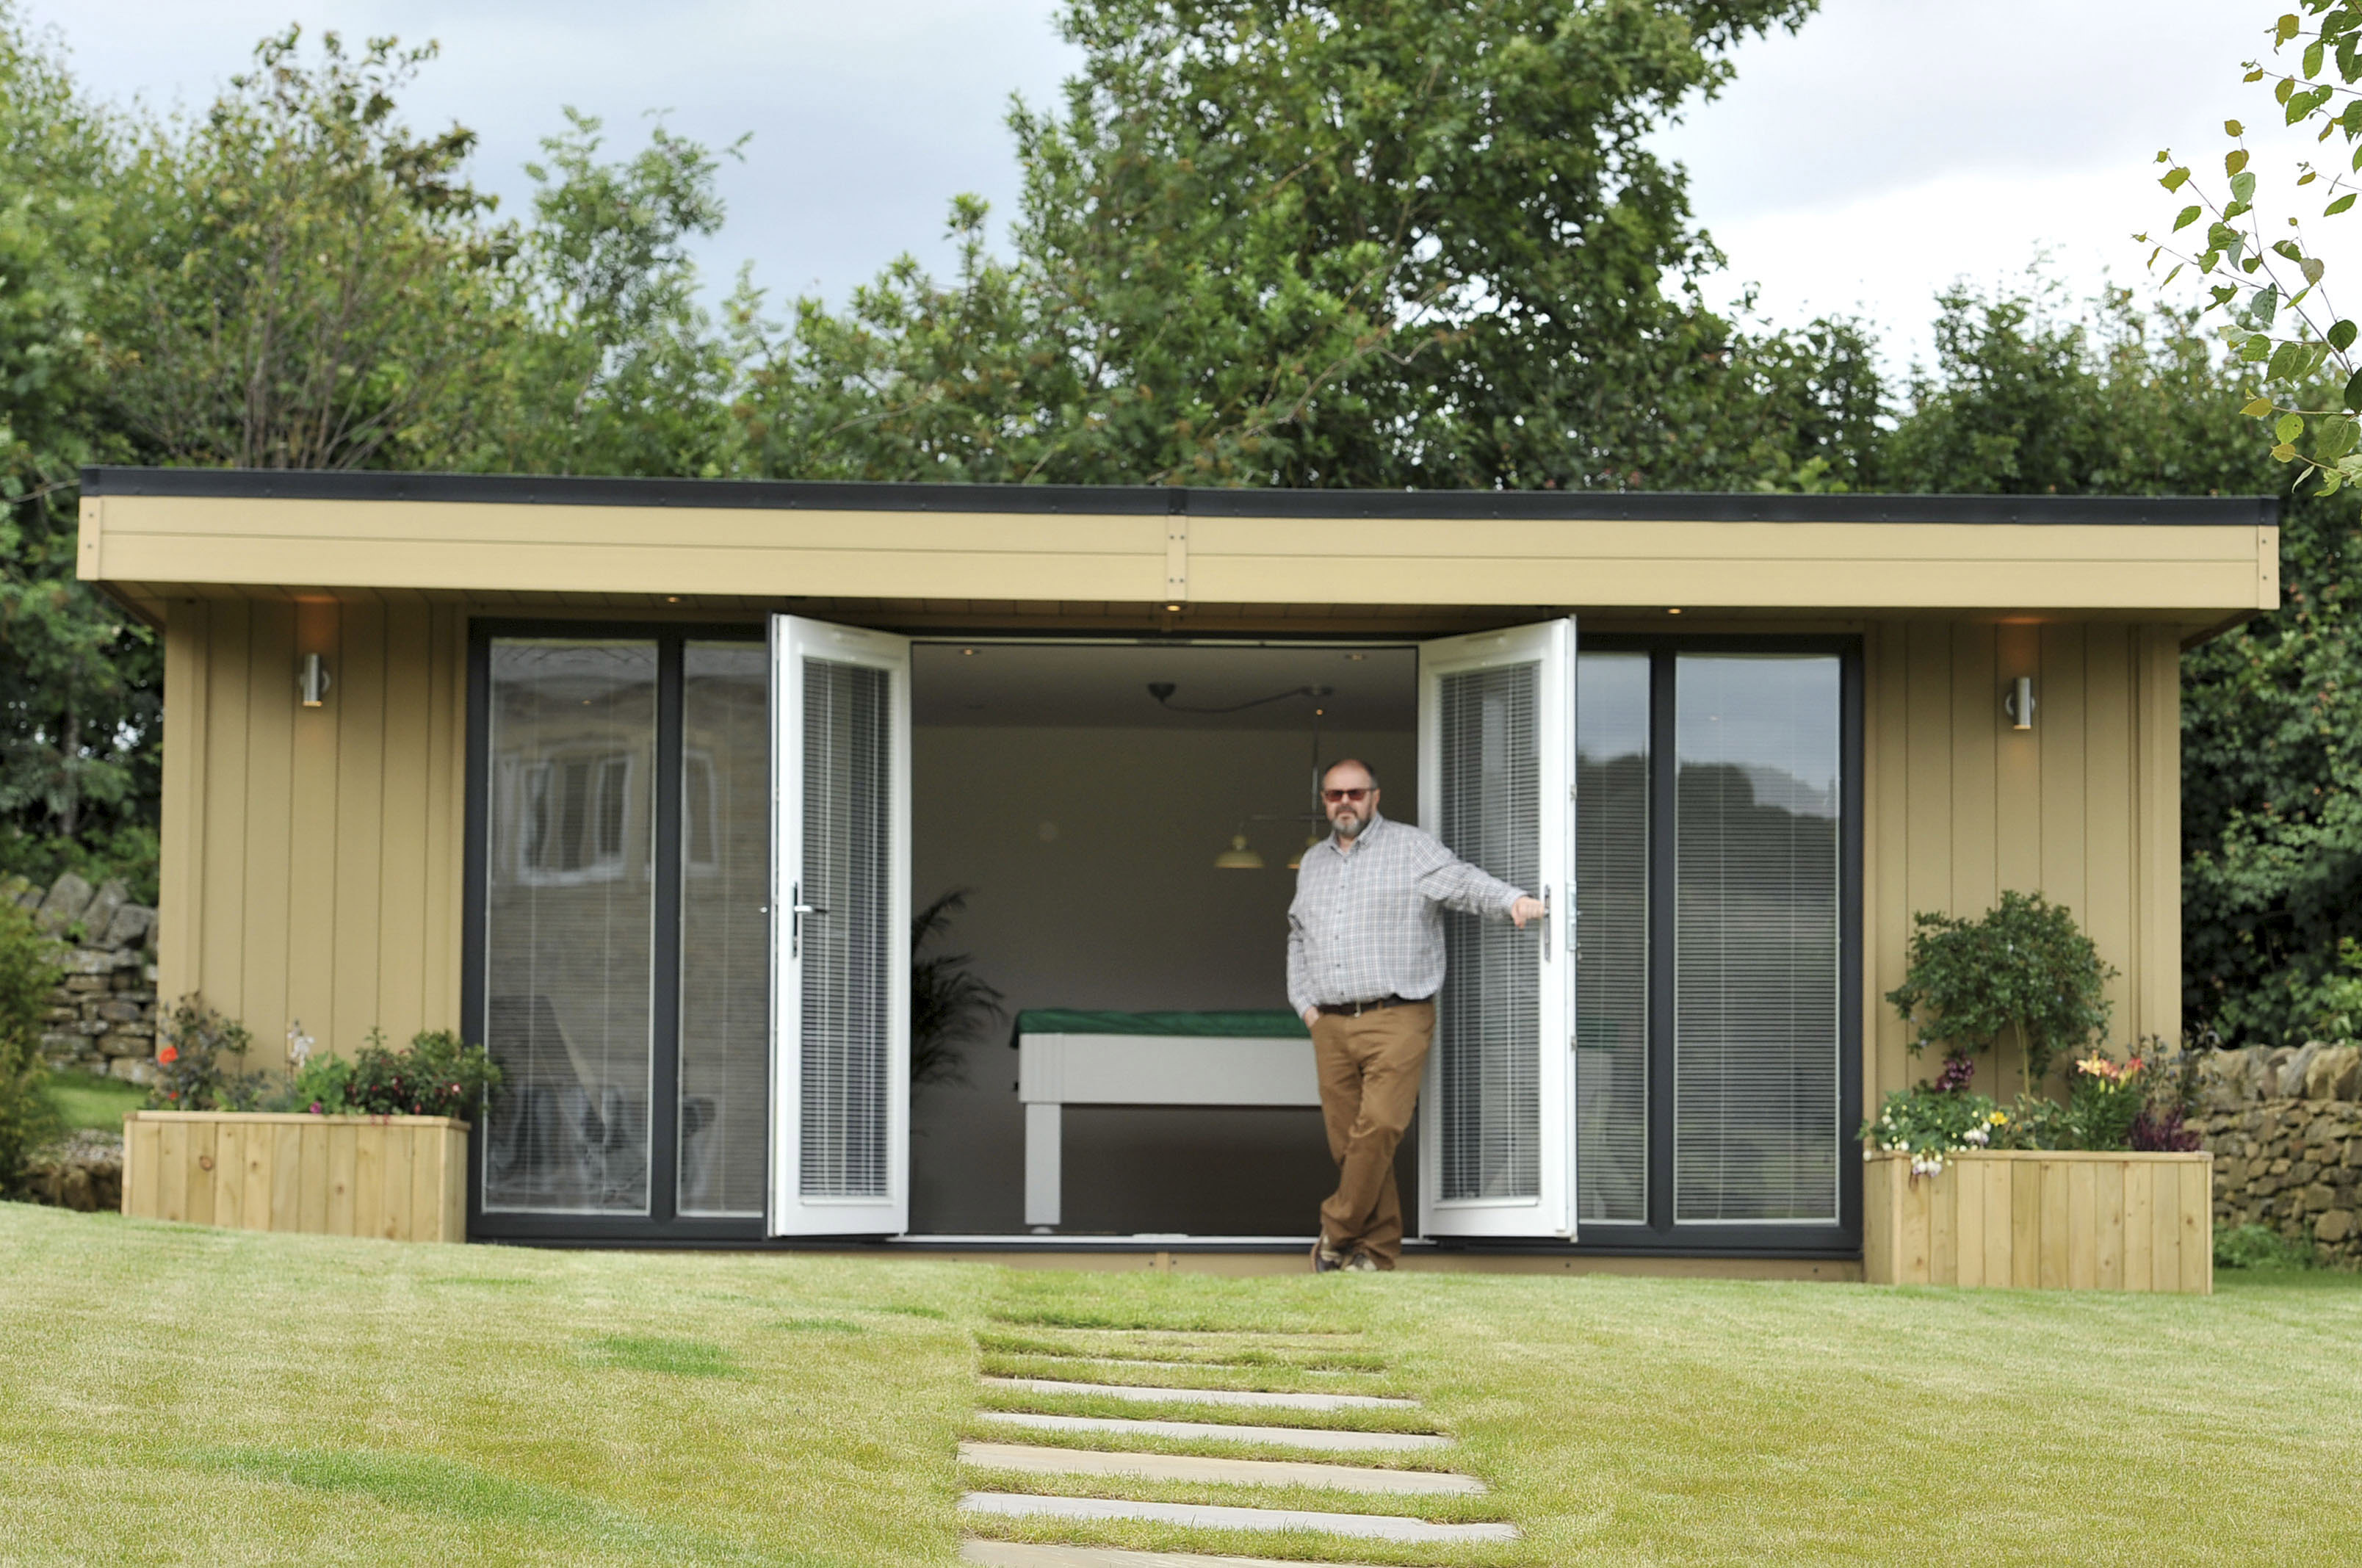 ... Garden Rooms Uk In Halifax West Yorkshire.png